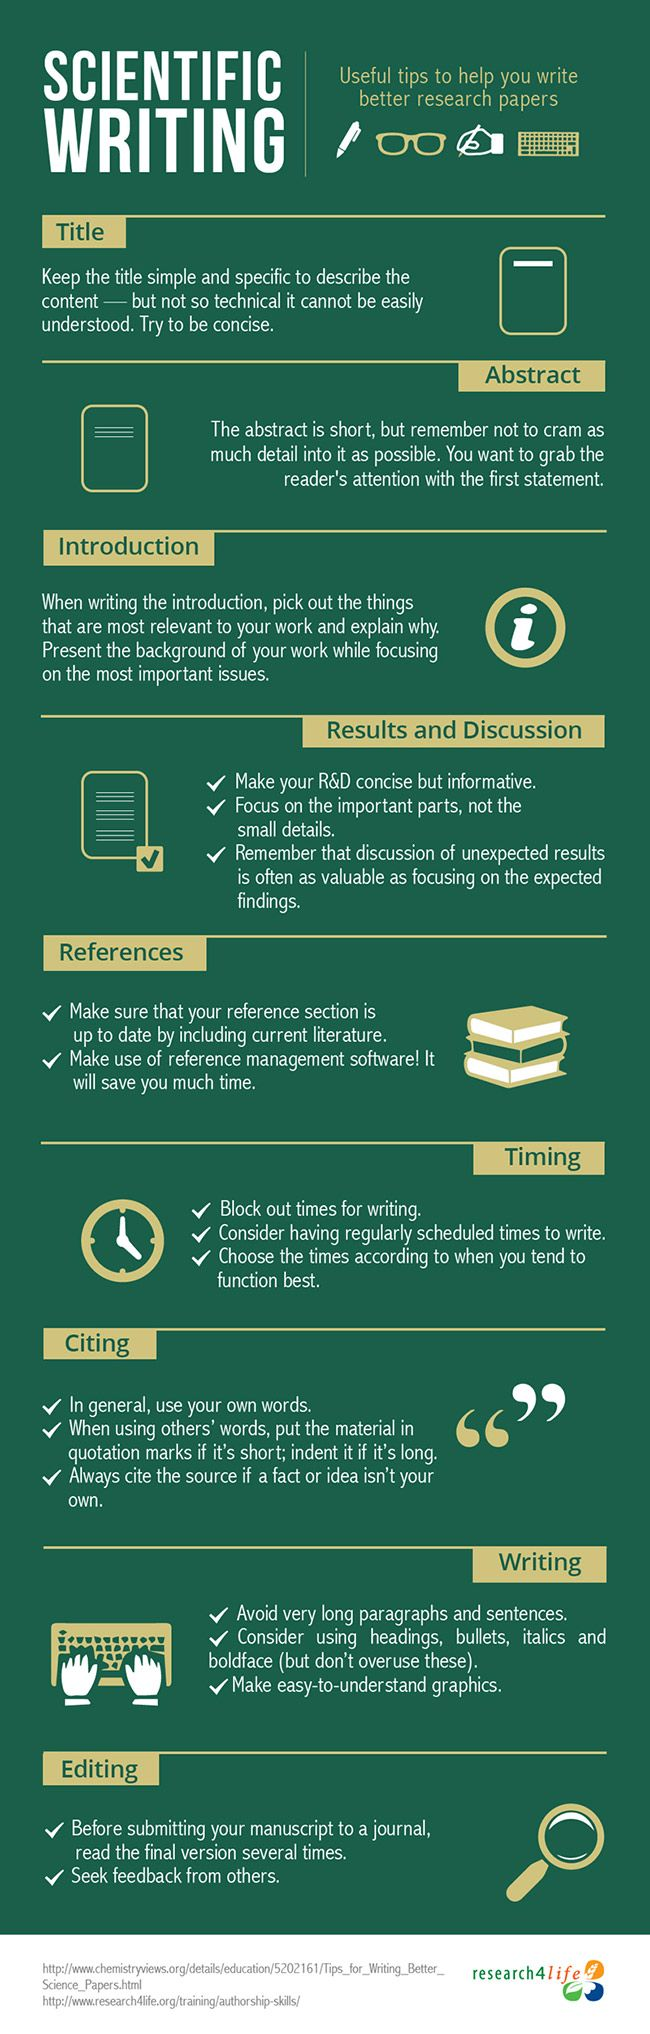 best ideas about scientific writing academic infographic how to write better science papers elsevier connect